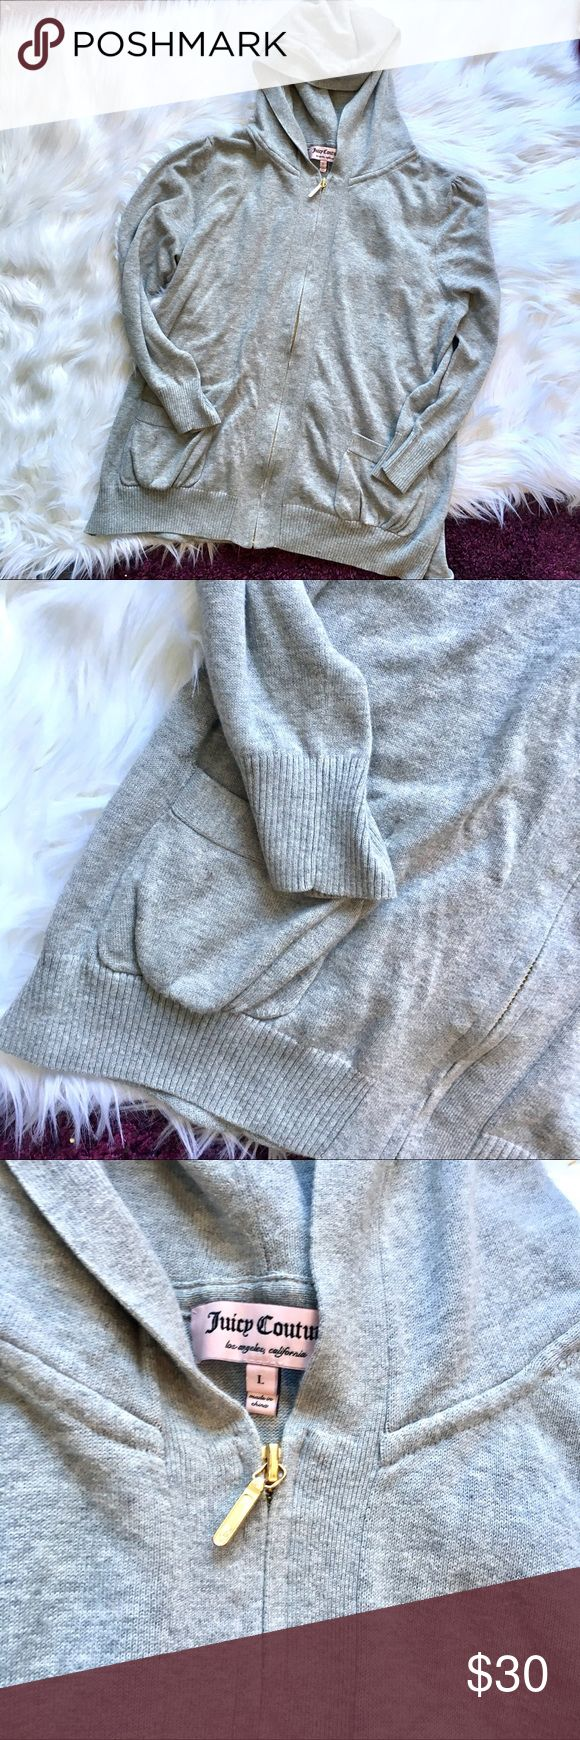 Juicy Couture Grey Zip Up Hoodie Great used condition. Minor flaw as shown in last photo. Cute drawstring touch to the back and cute detail to the shoulders. Juicy Couture Jackets & Coats